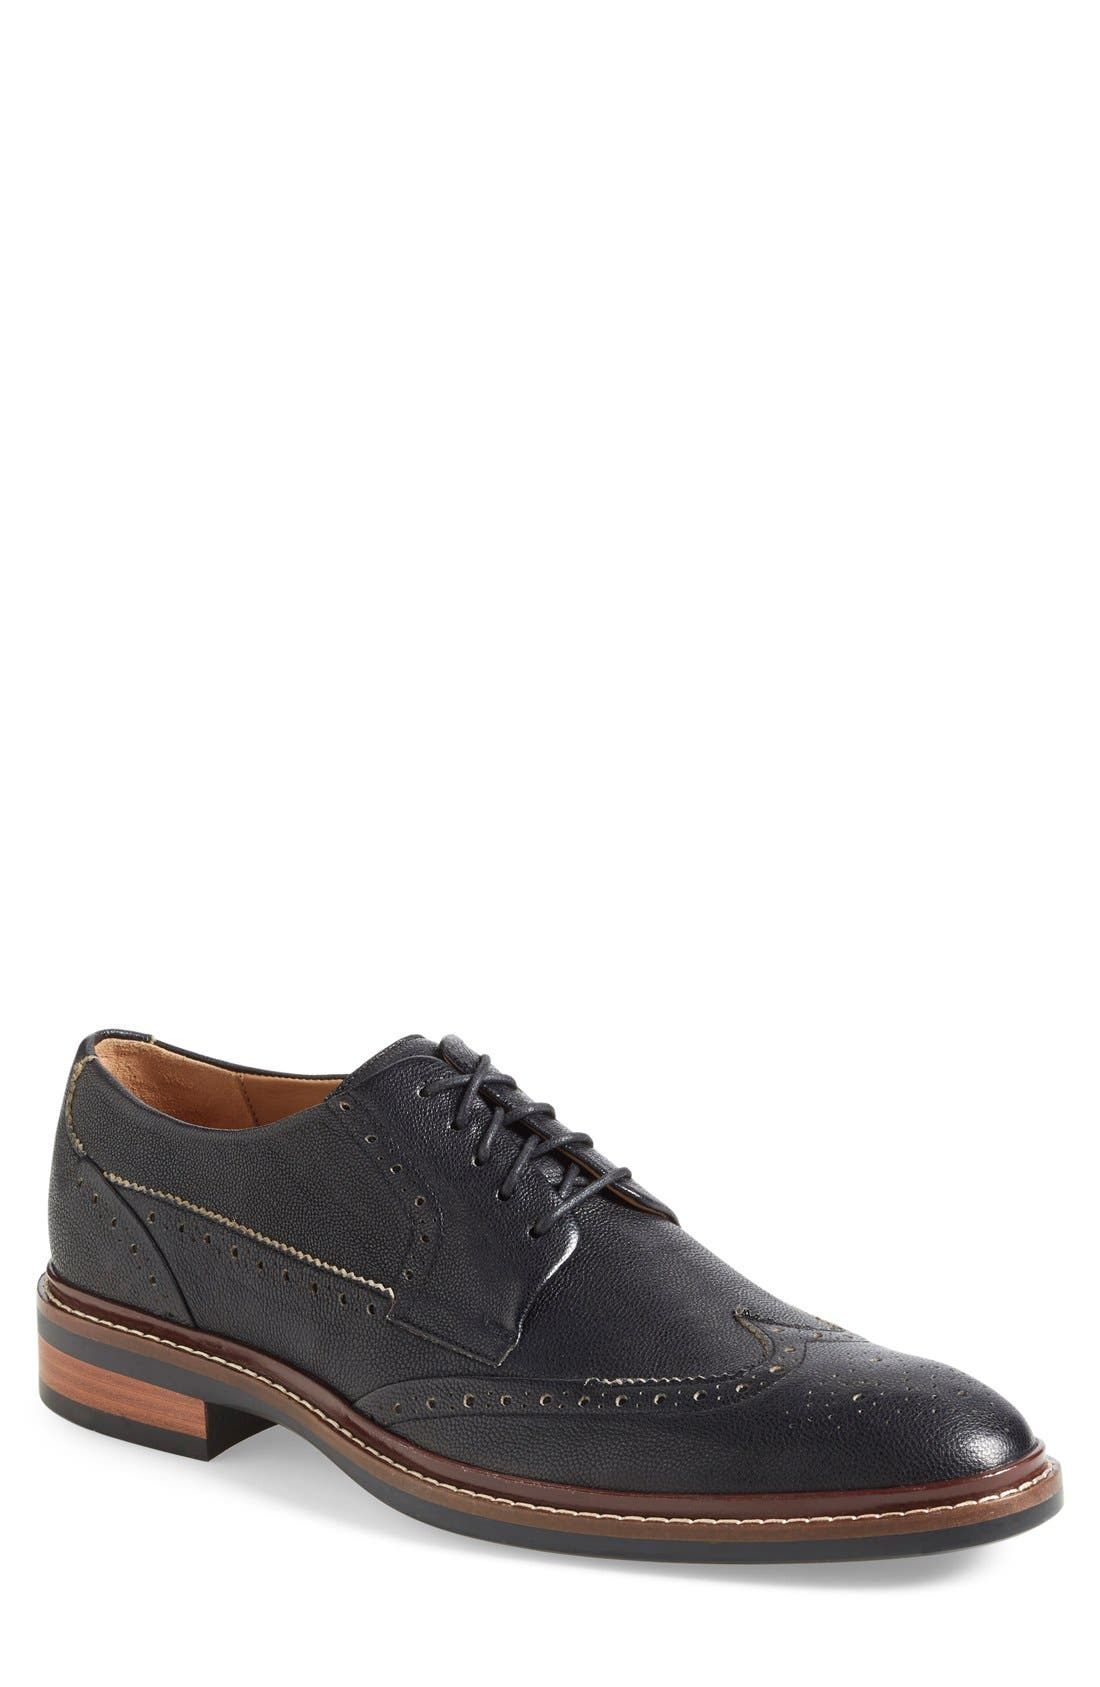 COLE HAAN Warren Welt Wingtip